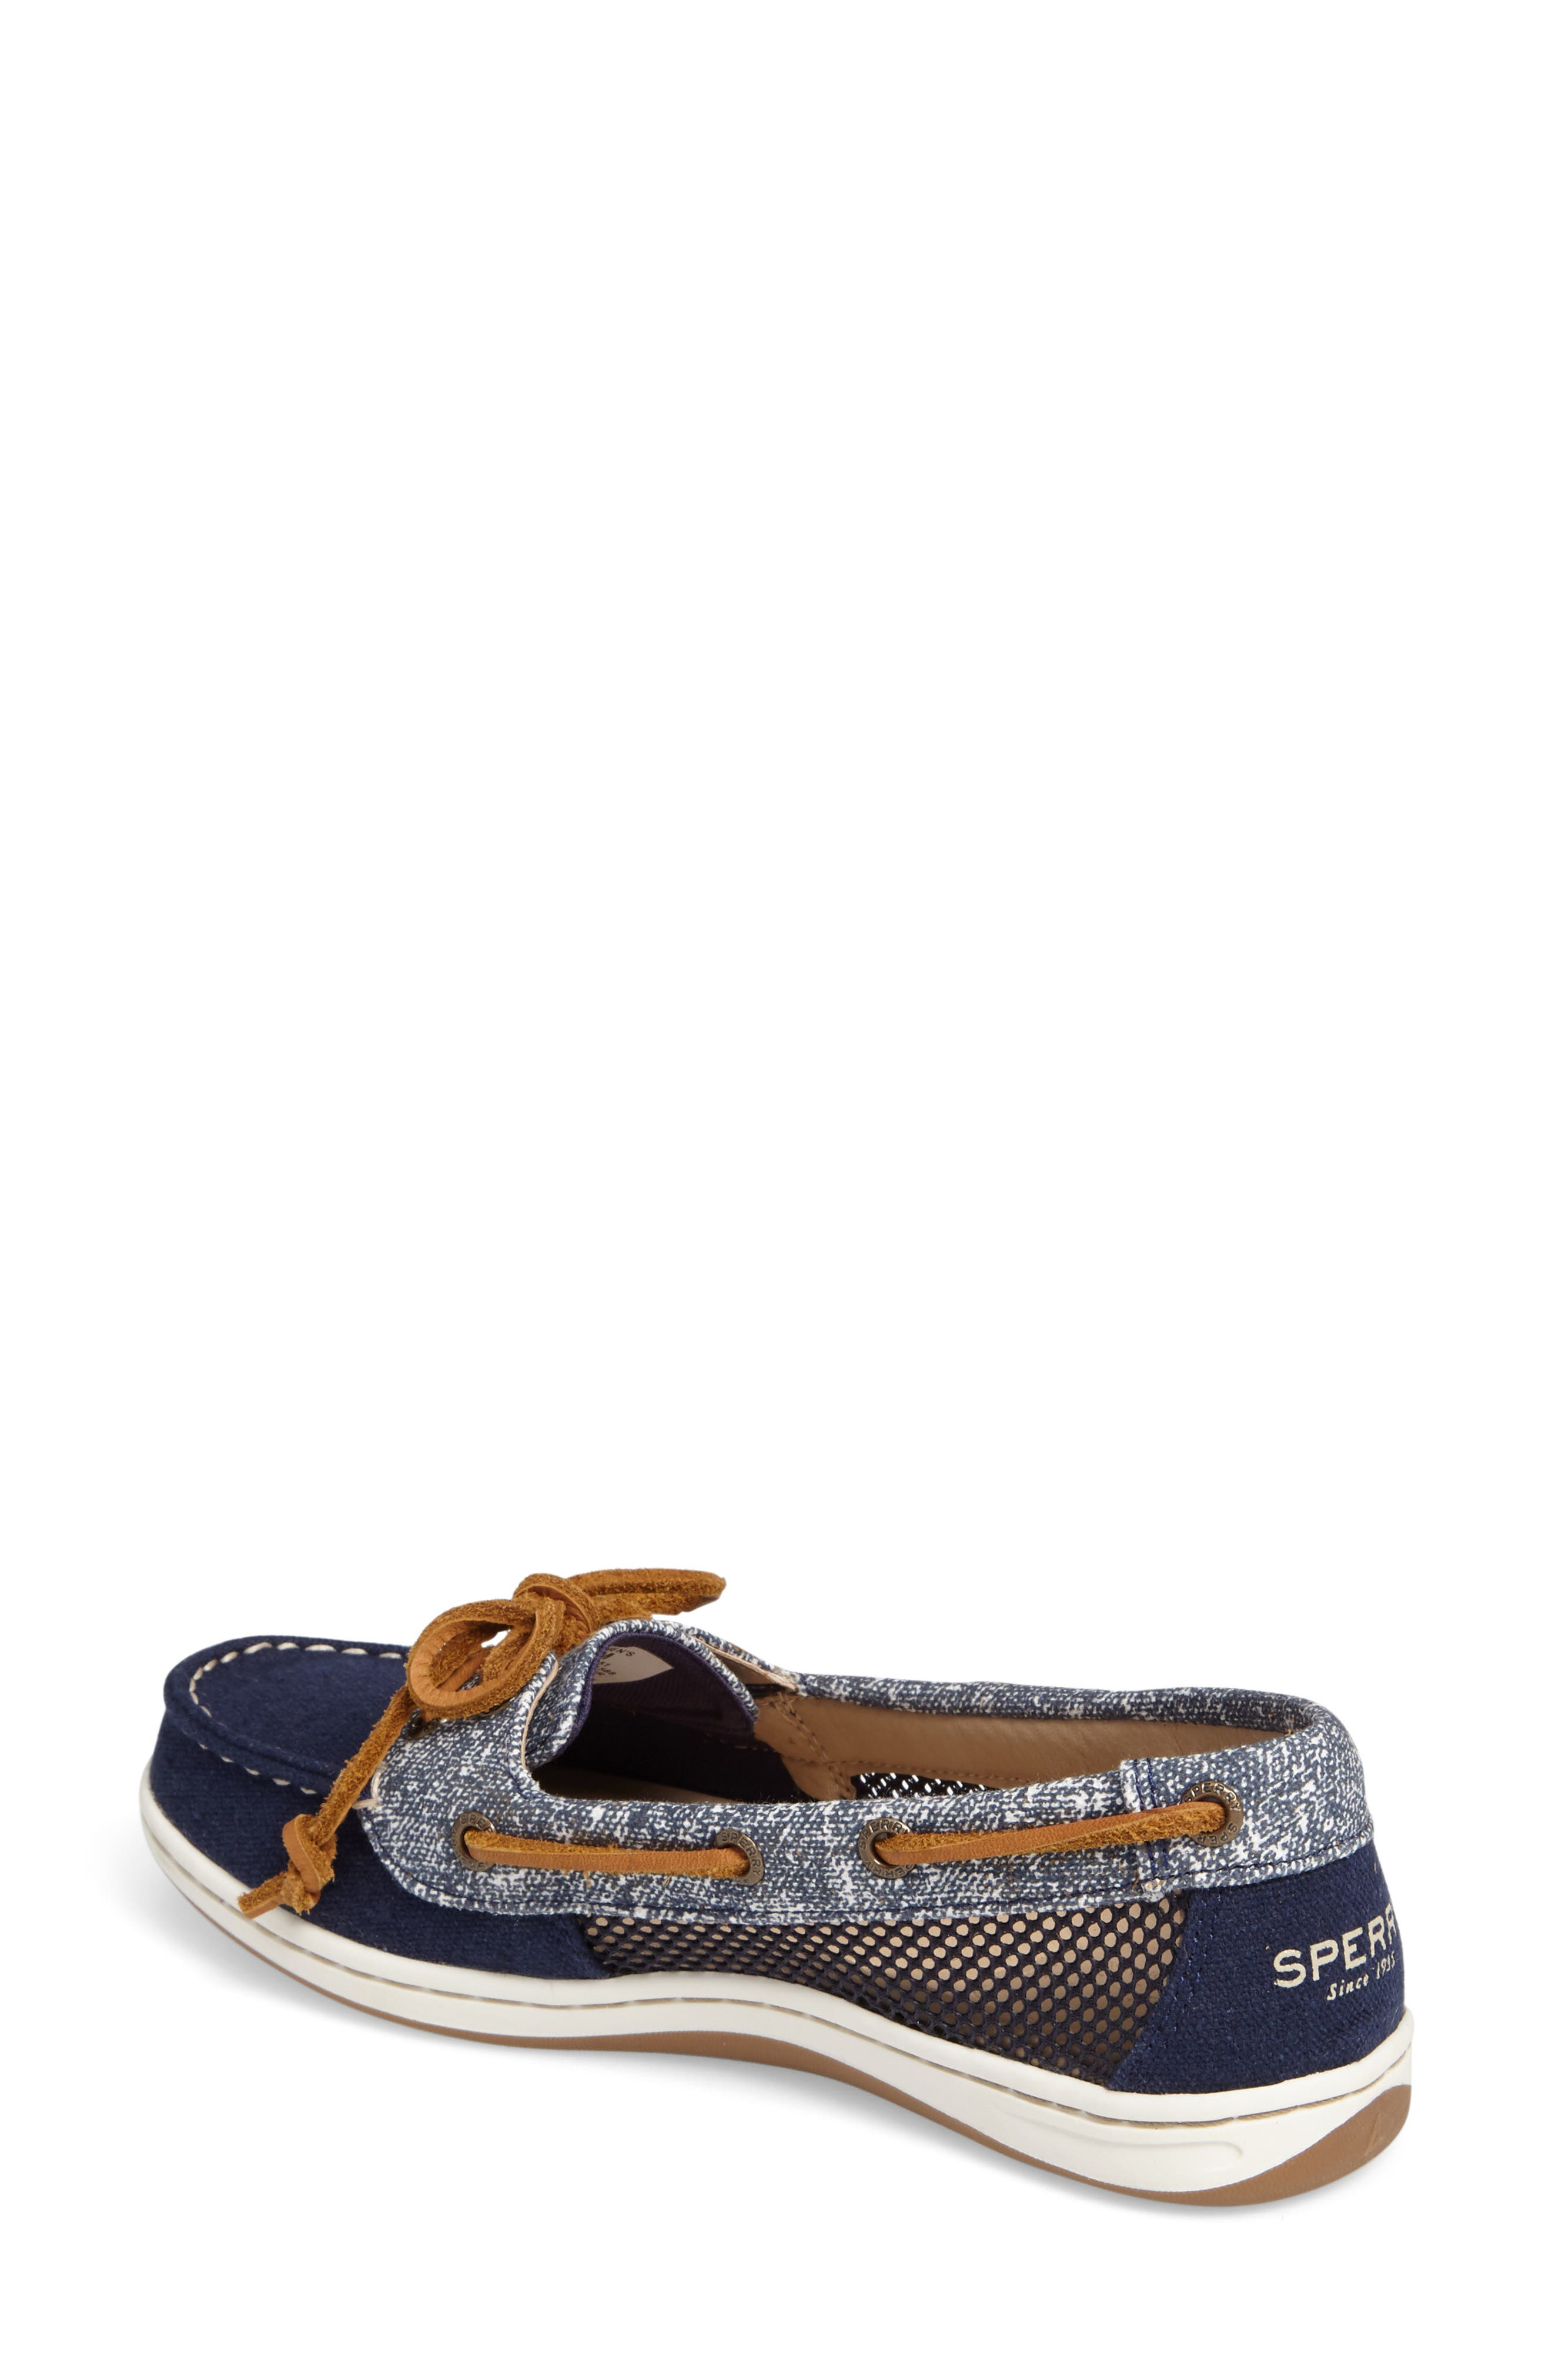 'Firefish' Boat Shoe,                             Alternate thumbnail 19, color,